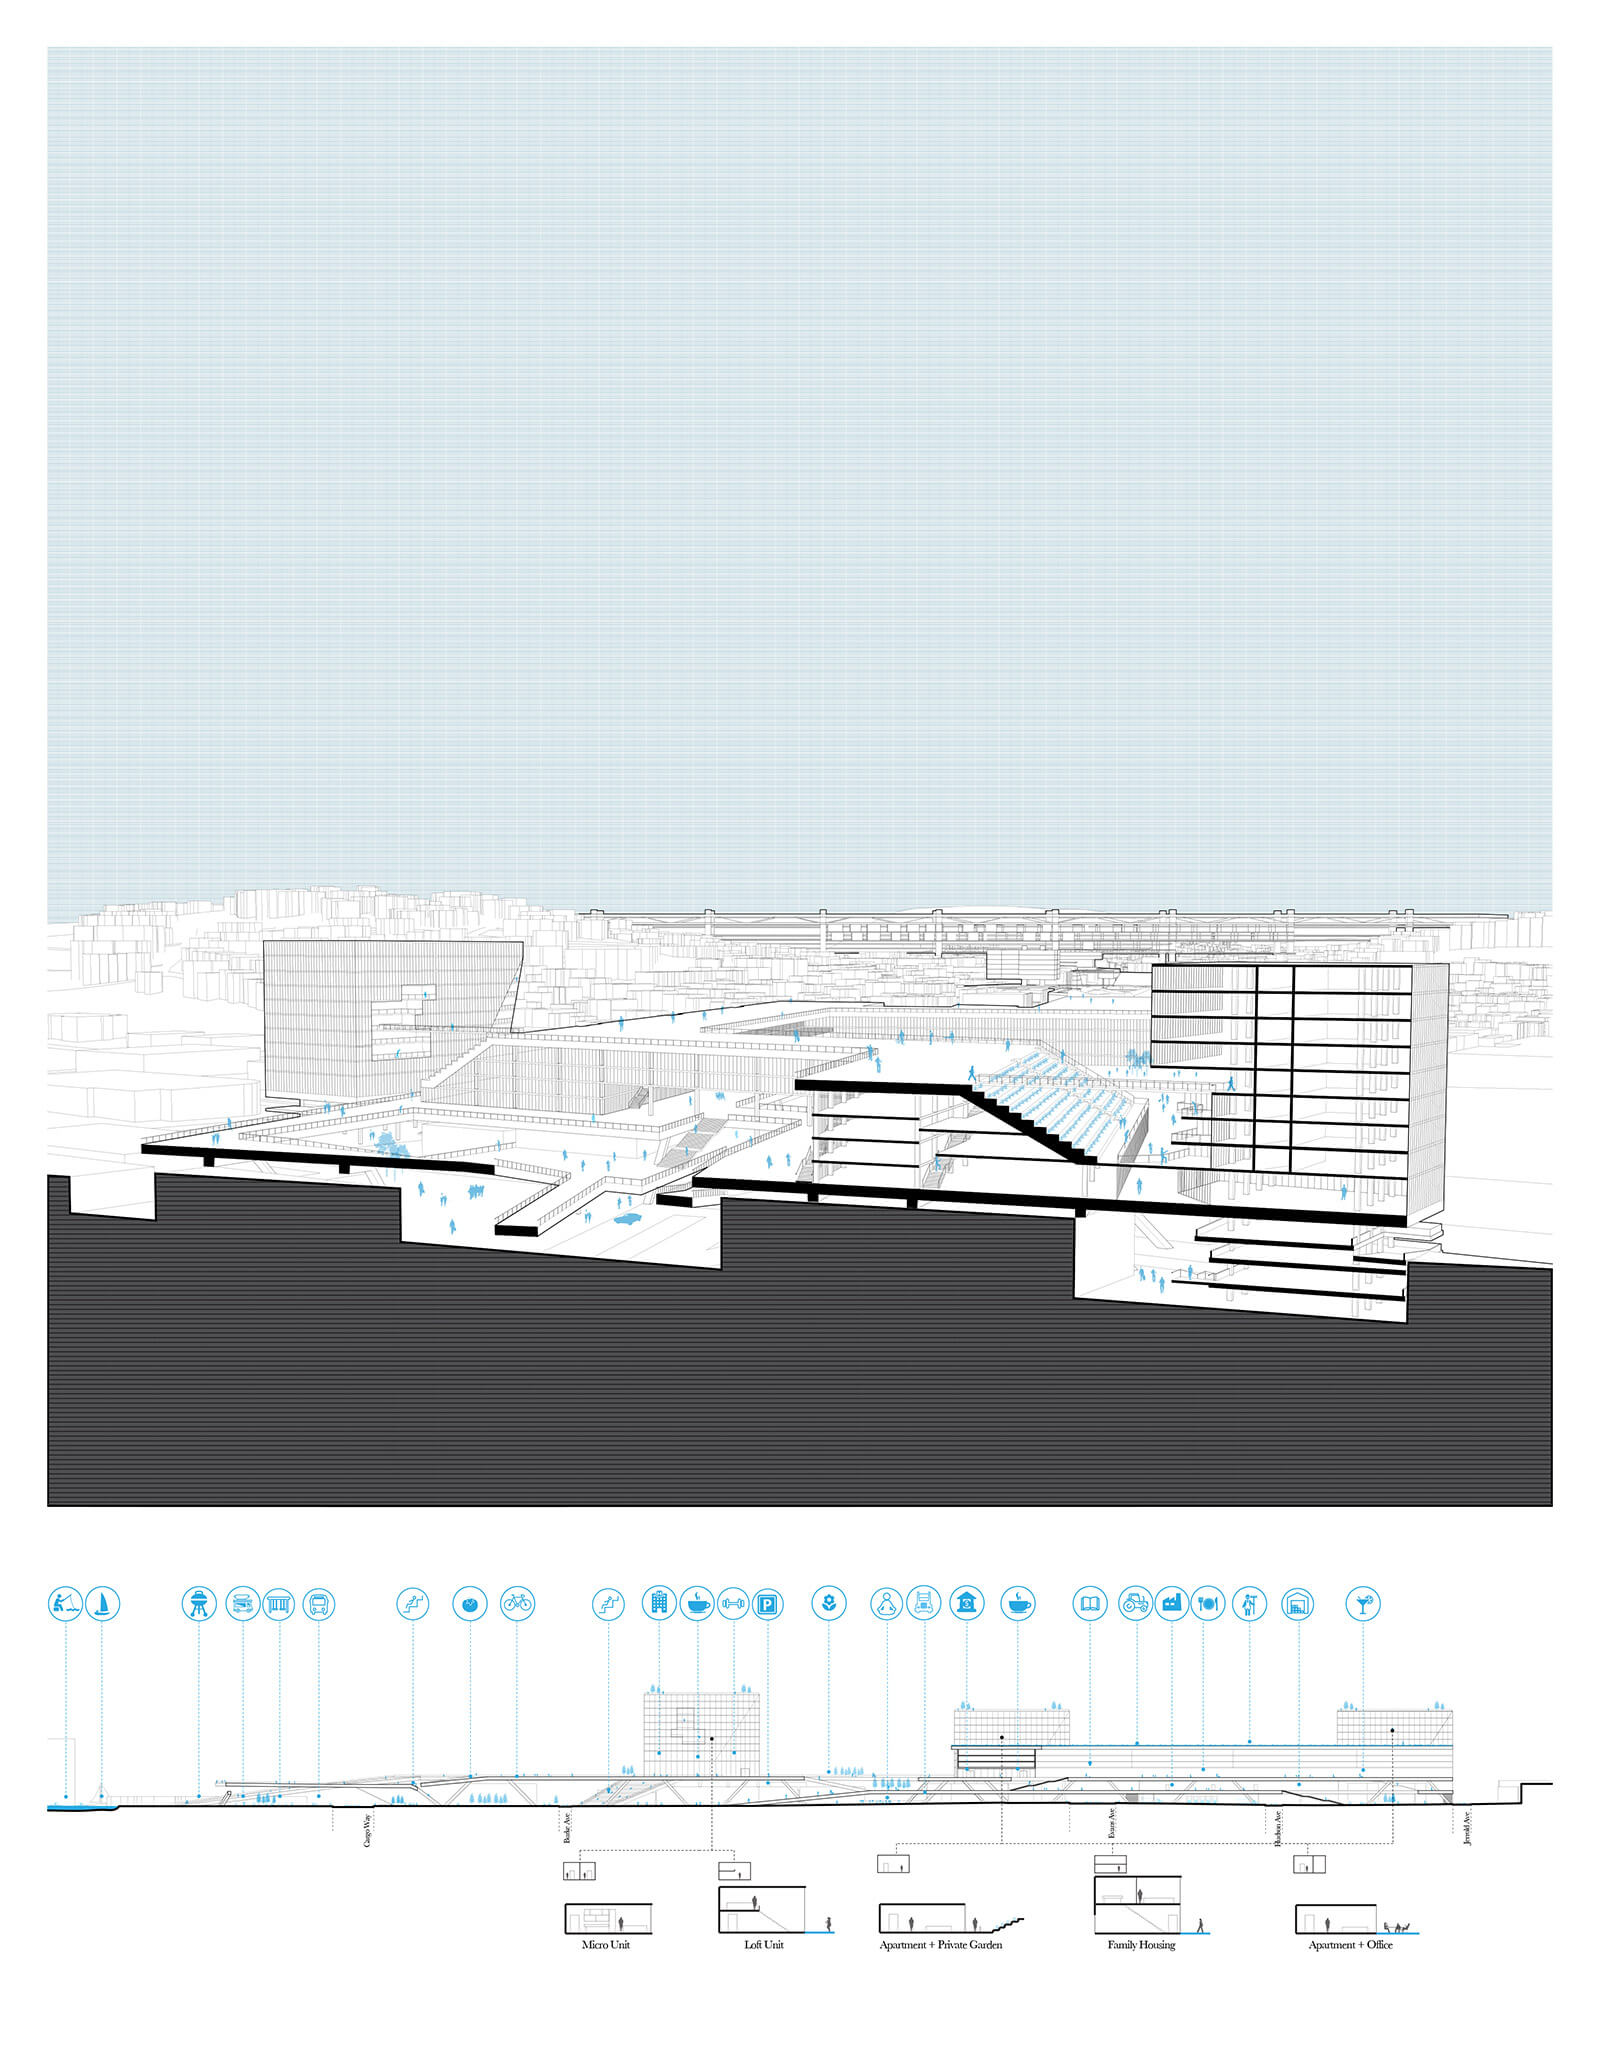 studio vara research the city + the city drawing site plan